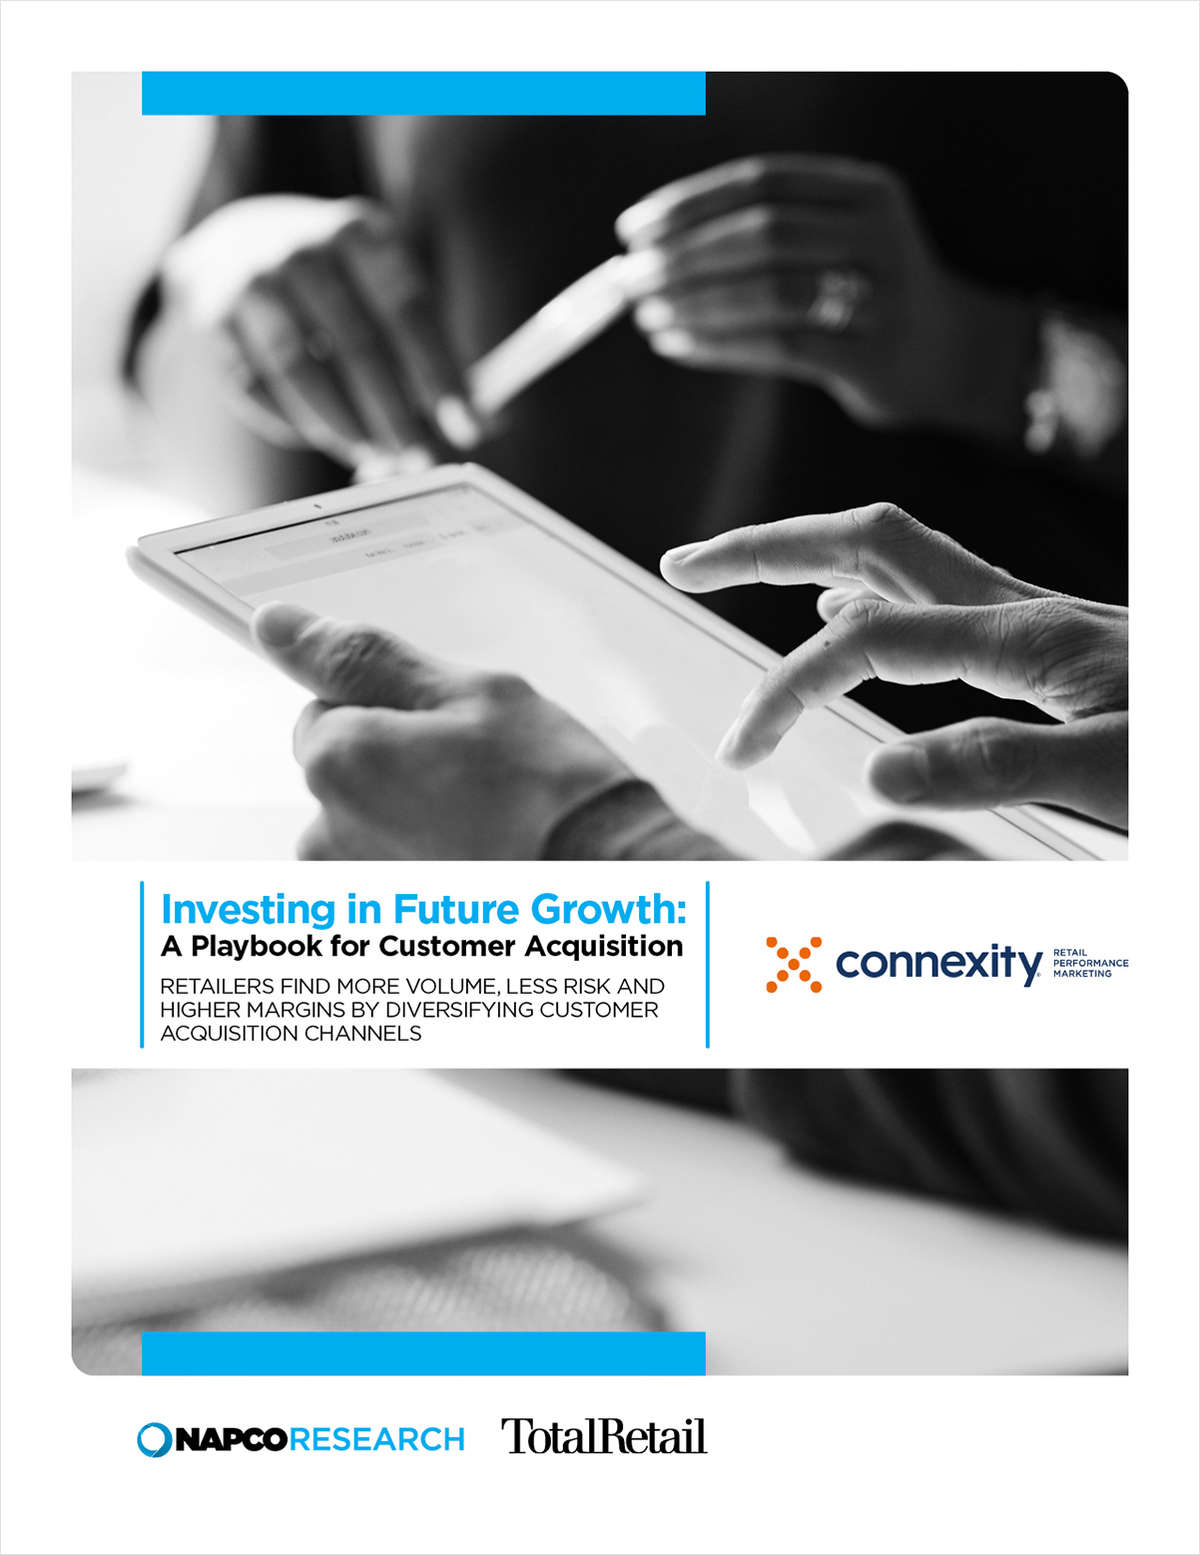 Investing in Future Growth: A Playbook for Customer Acquisition